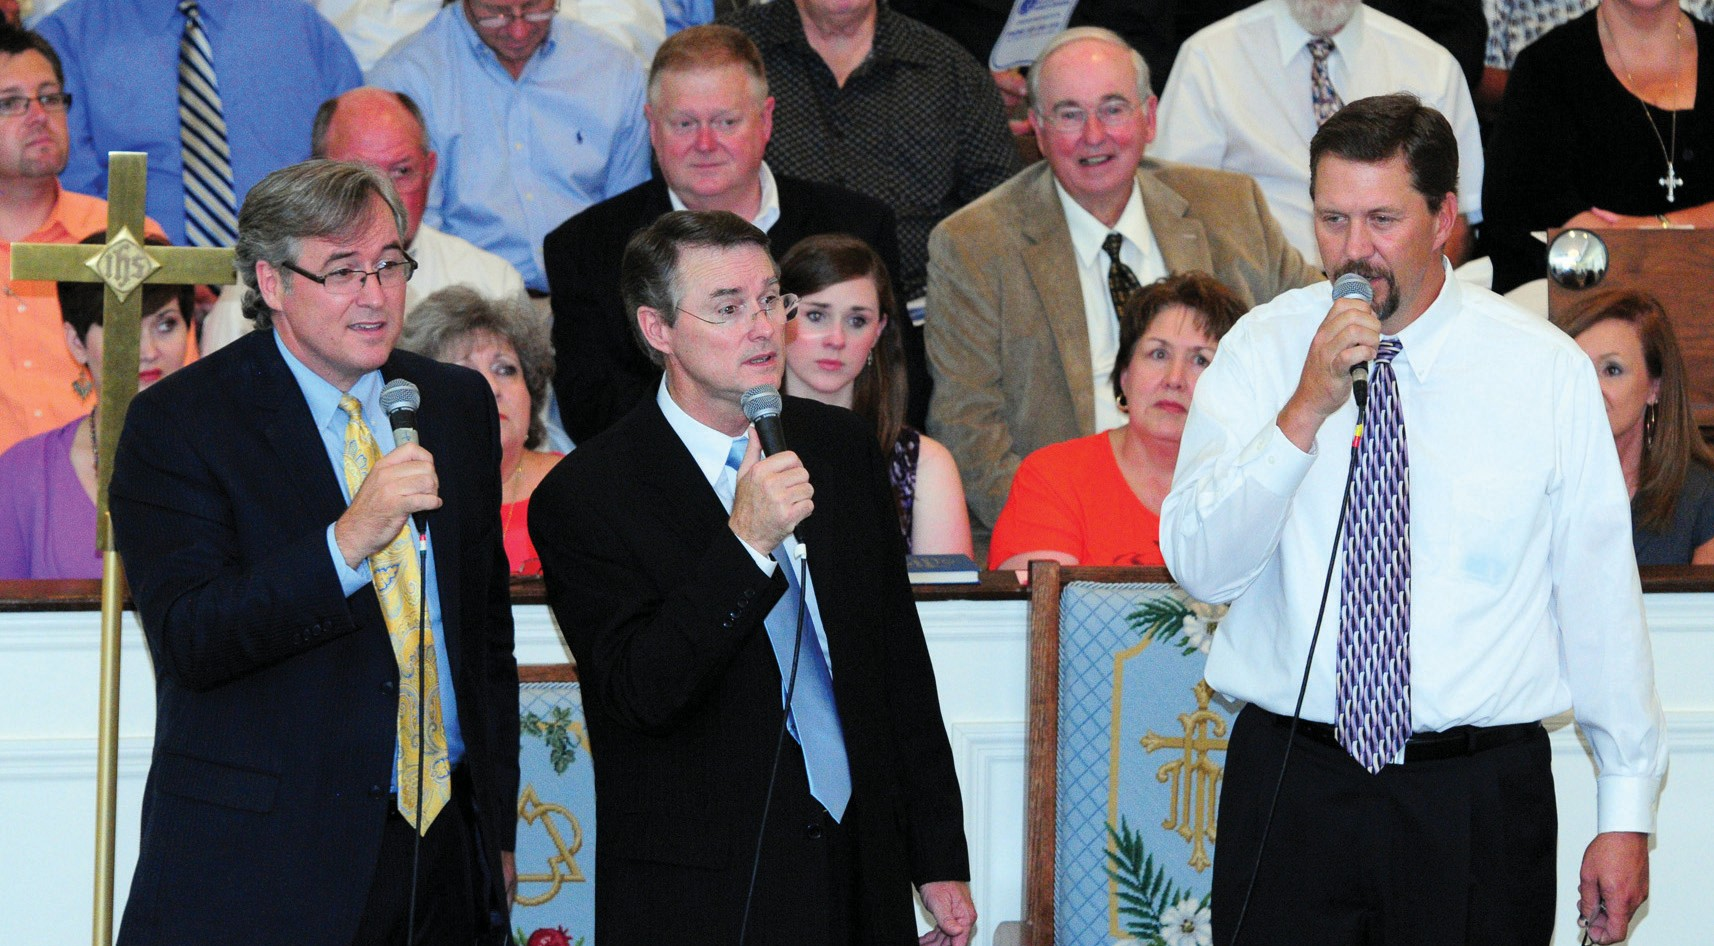 The musical Green Brothers (from left) Mark (lead and piano), Chris (tenor and baritone), and Benny (bass), team up on an a capella performance of a childhood favorite Is That the Lights of Home? at the annual Blount County Gospel Choir concert Sunday. Gazing on in rapt approval two rows back in the choir is the patriarch himself, Frank Green, former Blount County Probate Judge and father of the entire trio. Also visible just over Benny's shoulder in the first row is Chris's wife Pam who does more of the work than she gets credit for in staging the annual event. The 50-odd voice choir, with members representing more than 20 churches, gave its seventh annual performance at the event hosted since its outset by Lester Memorial United Methodist Church. People keep coming. – Ron Gholson